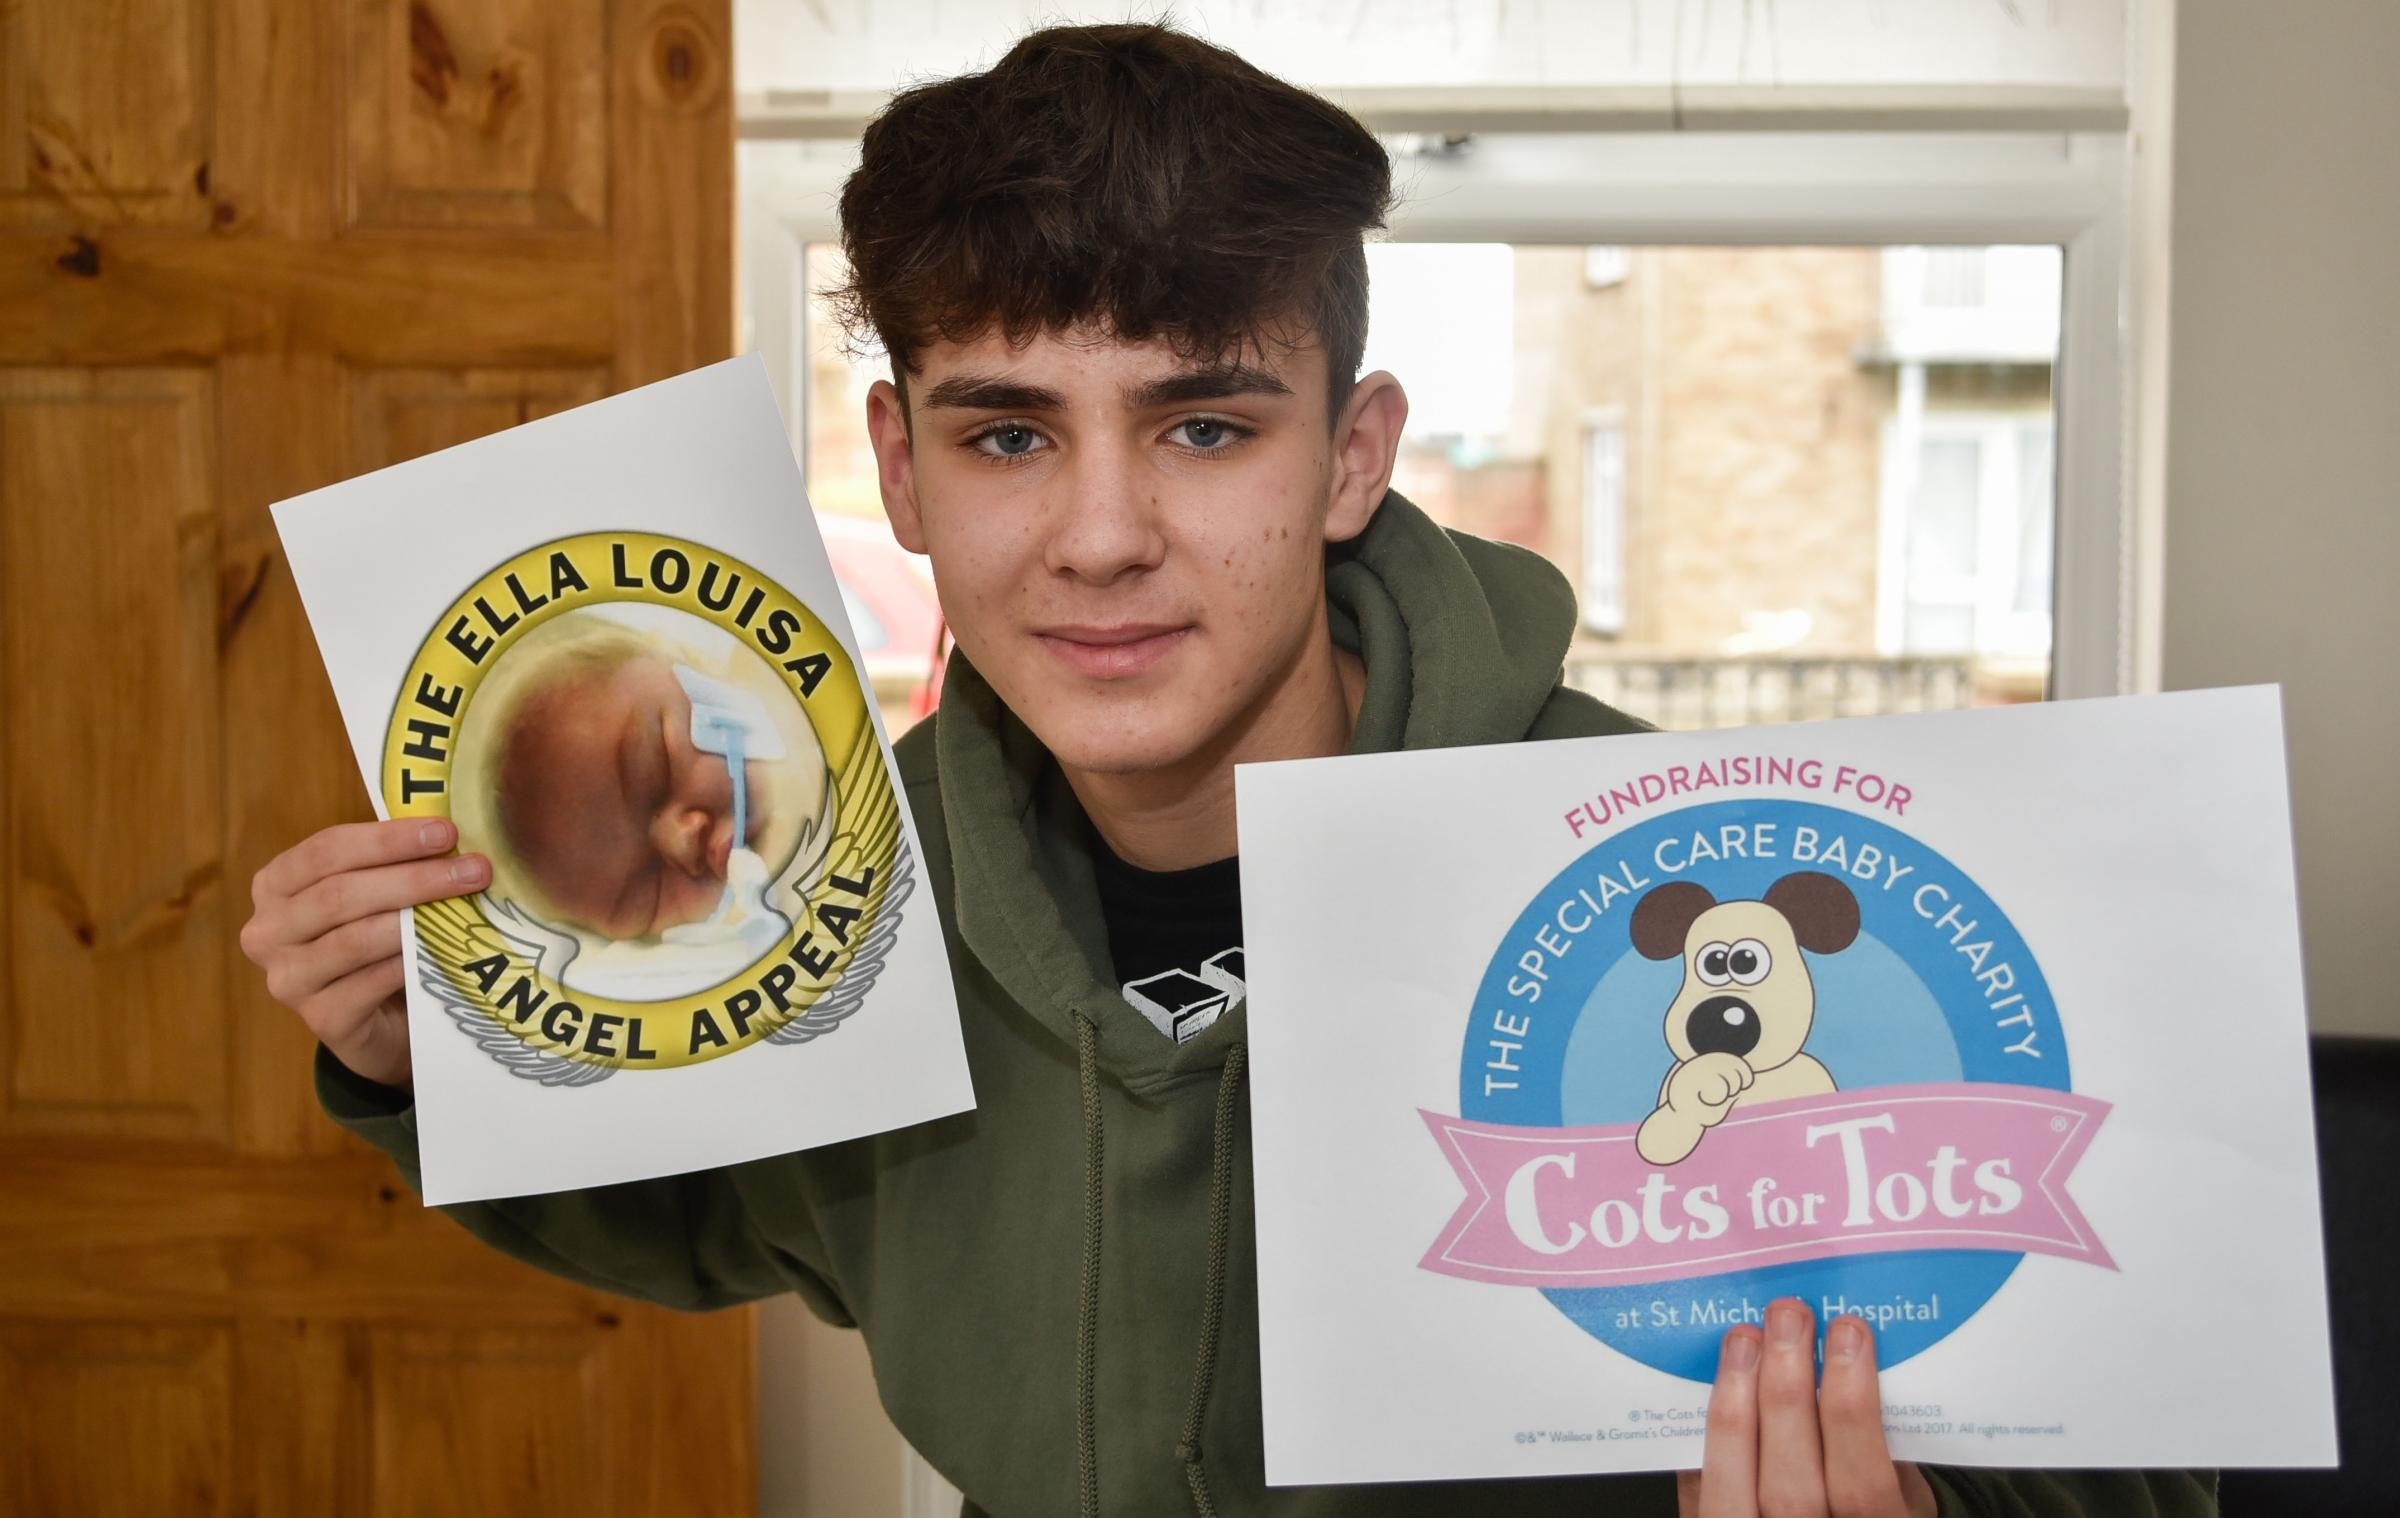 Josh Drury (17) of Trowbridge is doing a sponsored skydive to raise money for charity  Cots for Tots, in memory of his sister Ella Louise.Photo by www.gphillipsphotography.com  GP1227